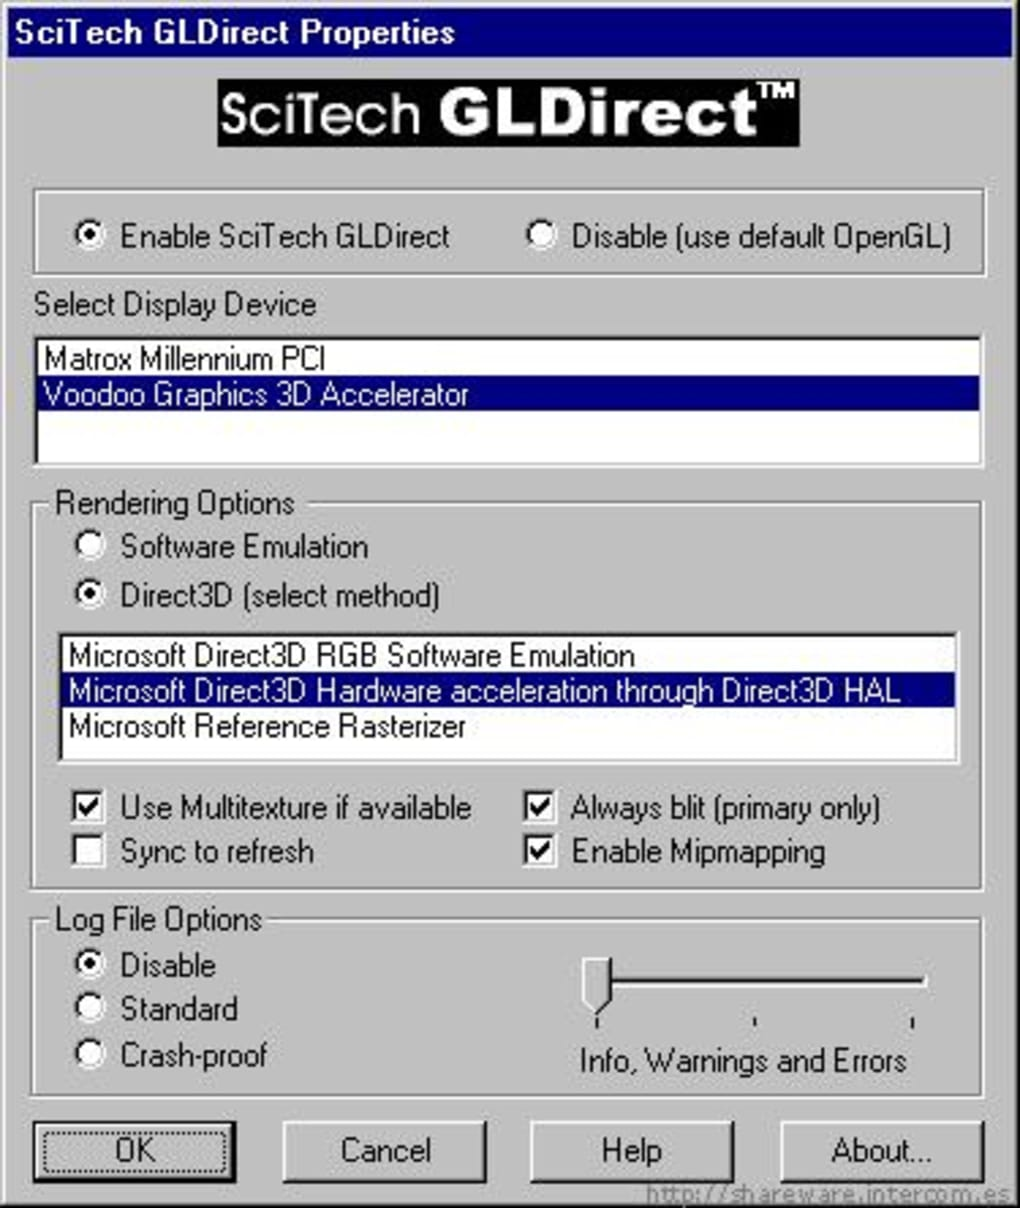 scitech gldirect configuration